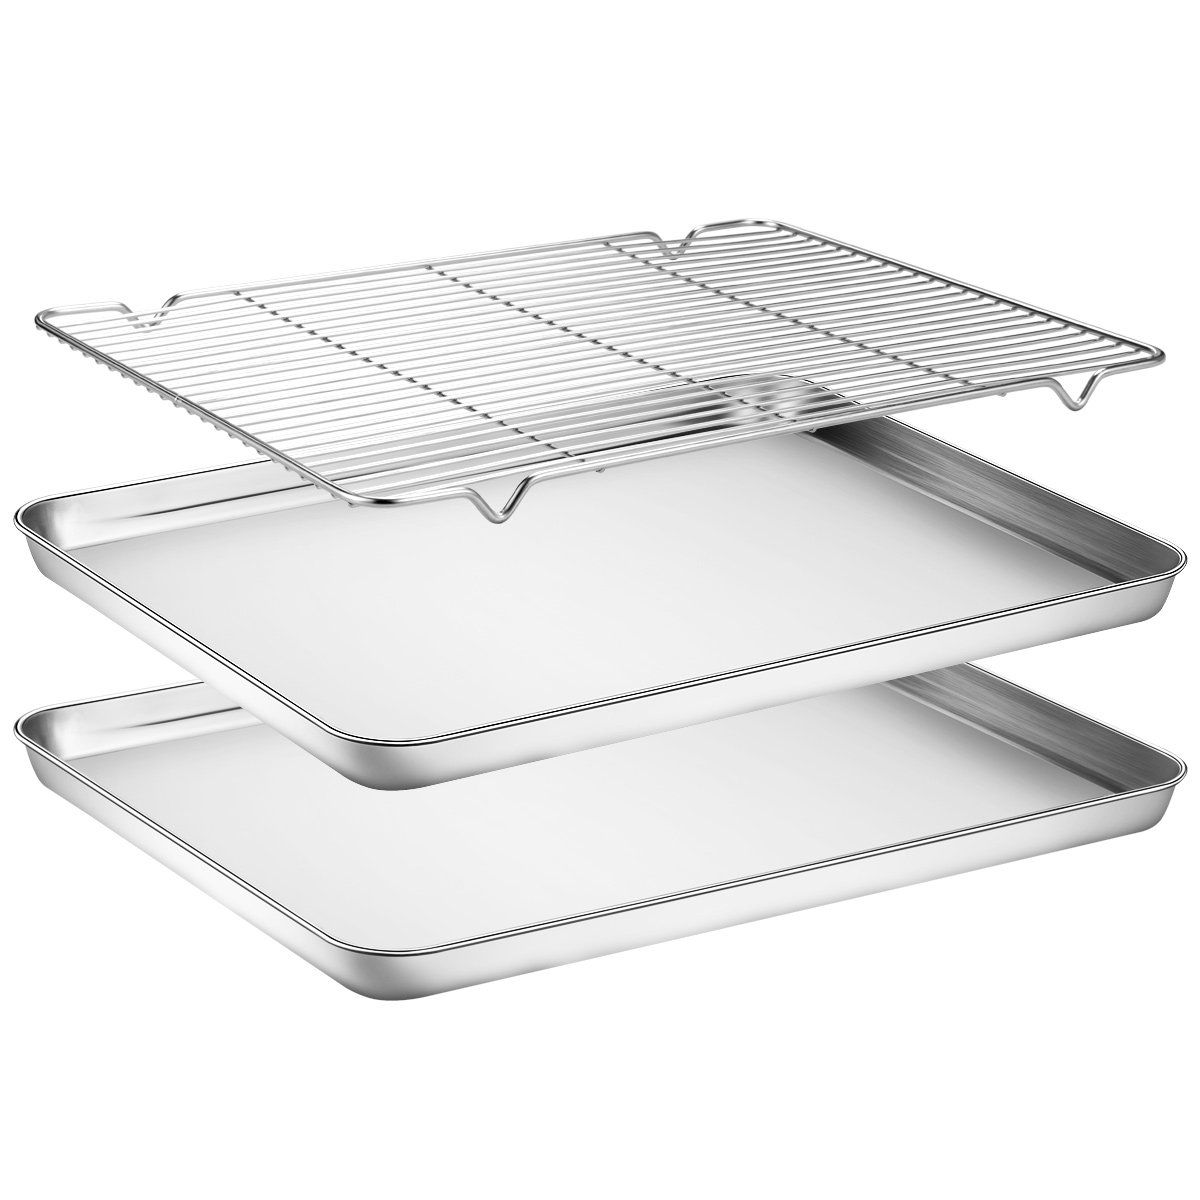 Amazon Com Baking Sheets 2 Pieces With A Rack Hkj Chef Cookie Sheets And Nonstick Cooling Rack Stainless Steel Bakin Baking Pans Baking Sheets Toaster Oven